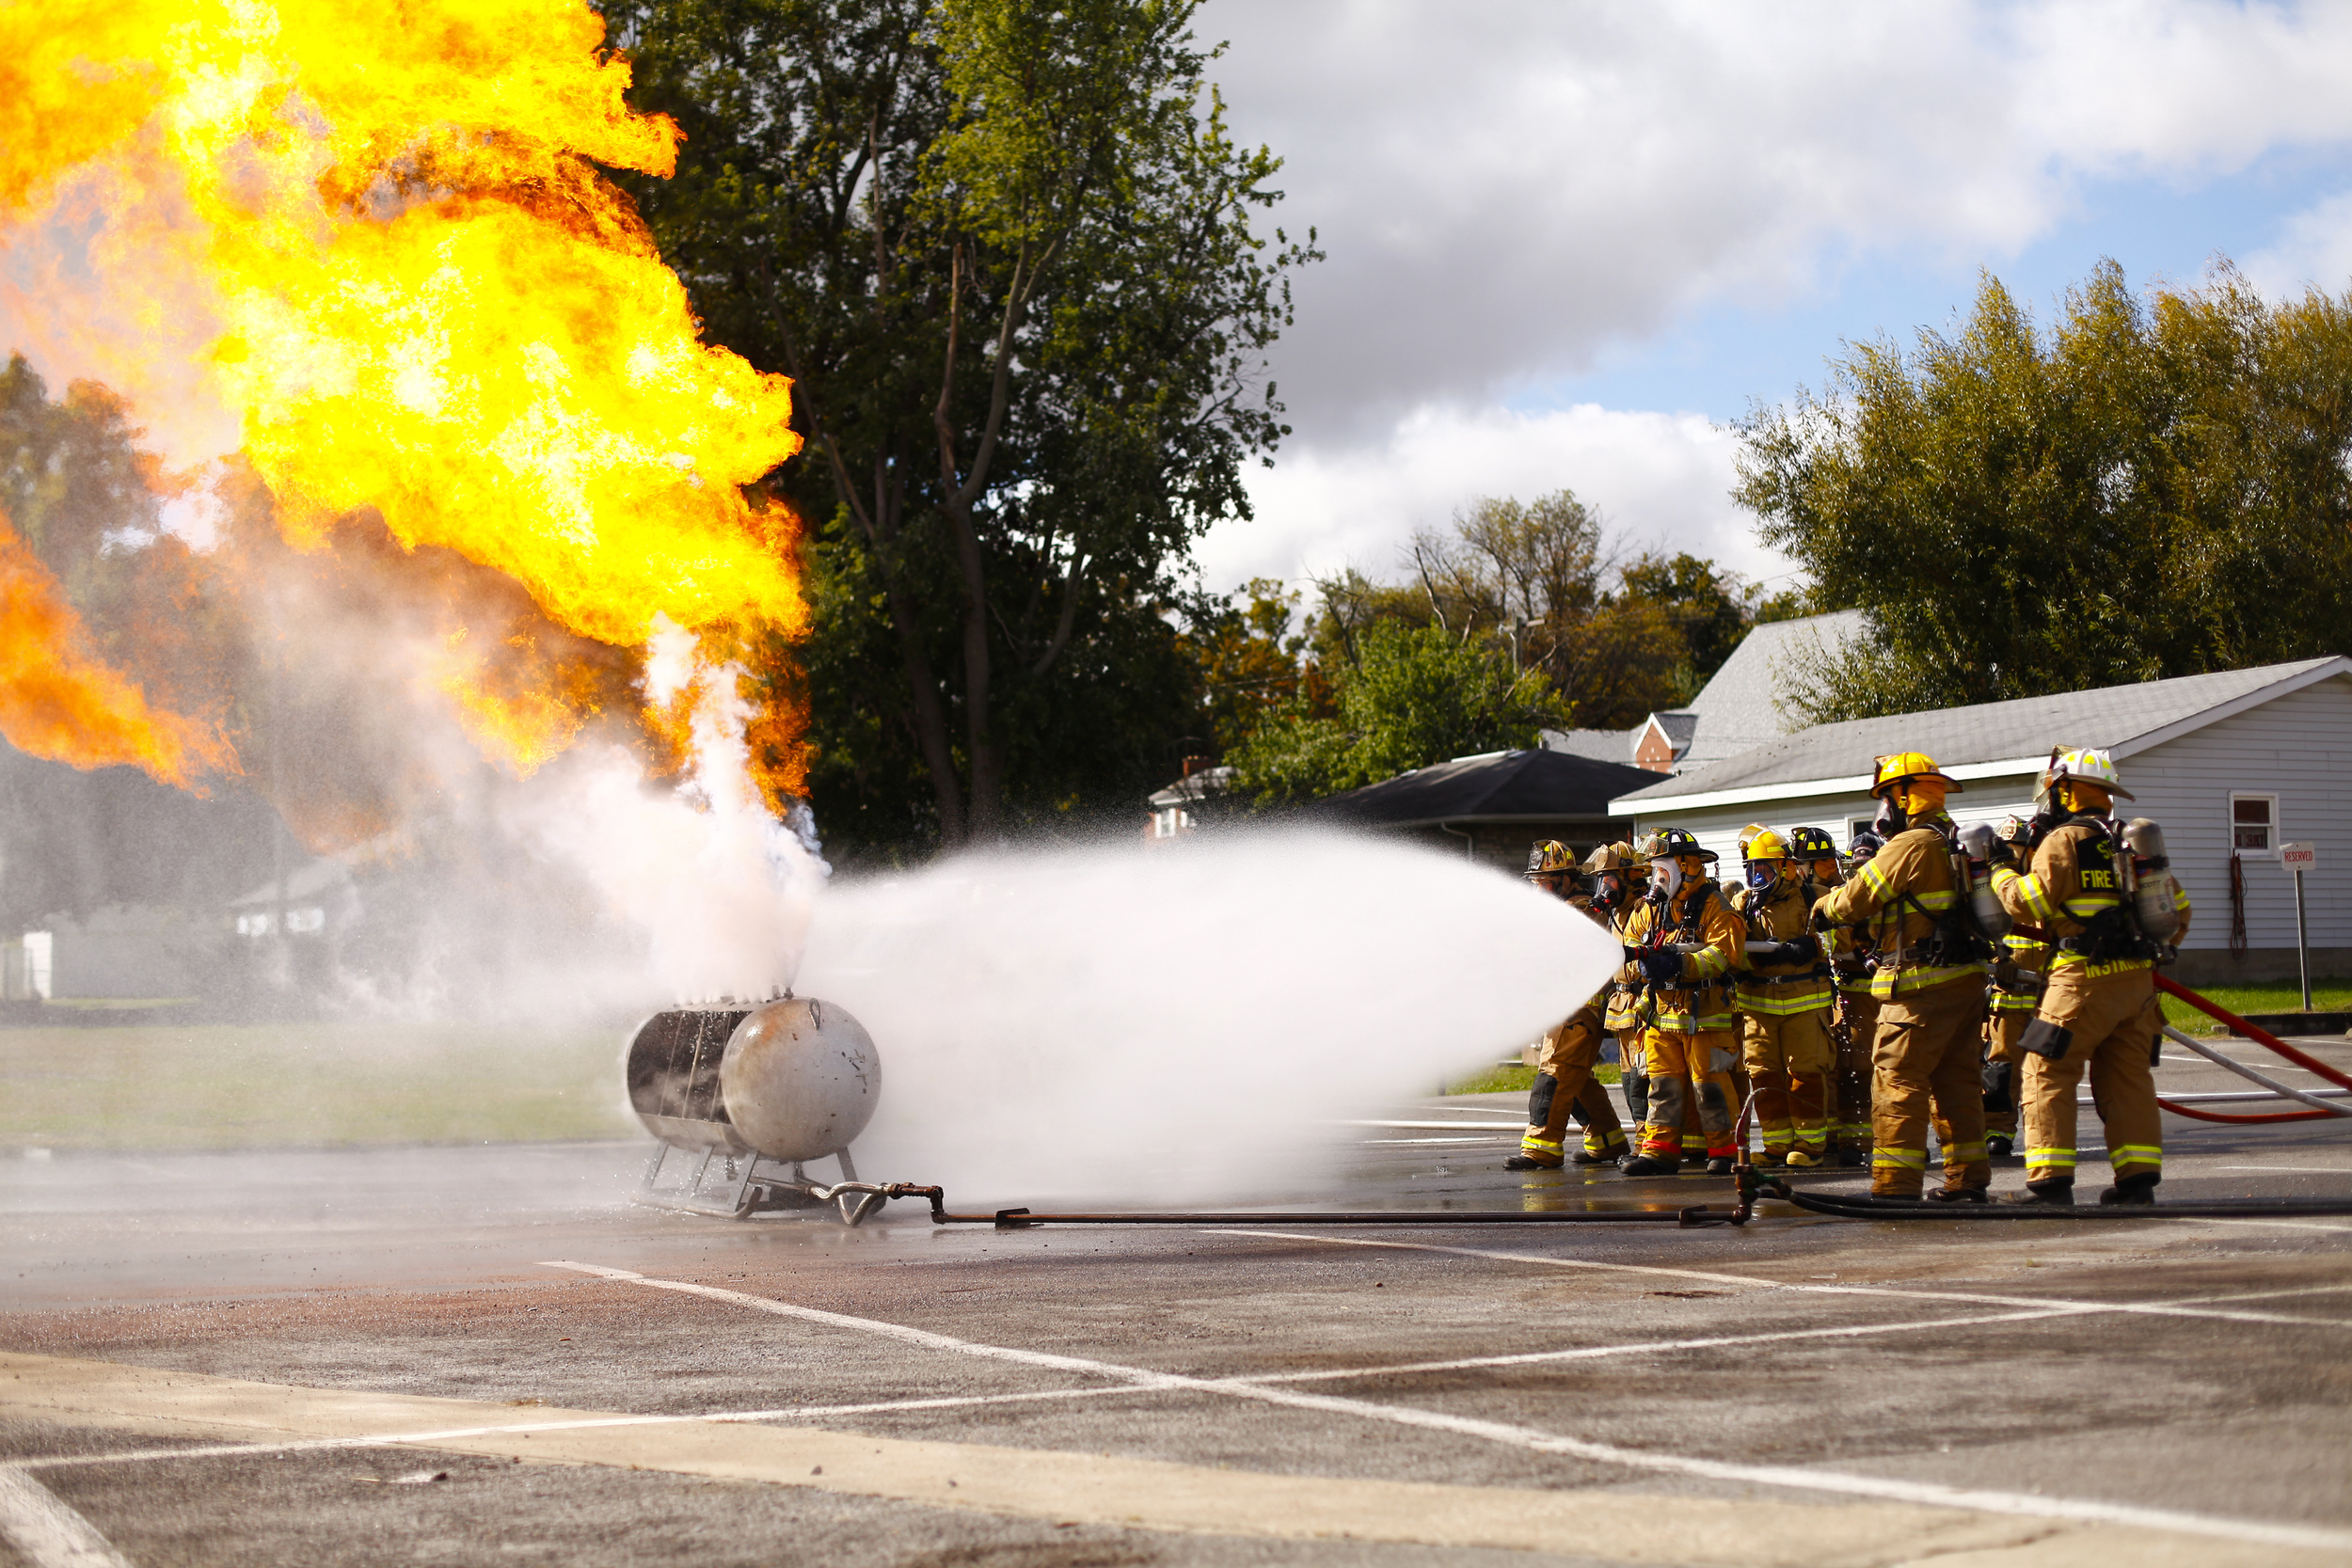 Fire departments from across Union County, Ky., took part in propane tank fire training. The state sponsored training showed firefighters the proper way to turn off the gas valve during a fire.